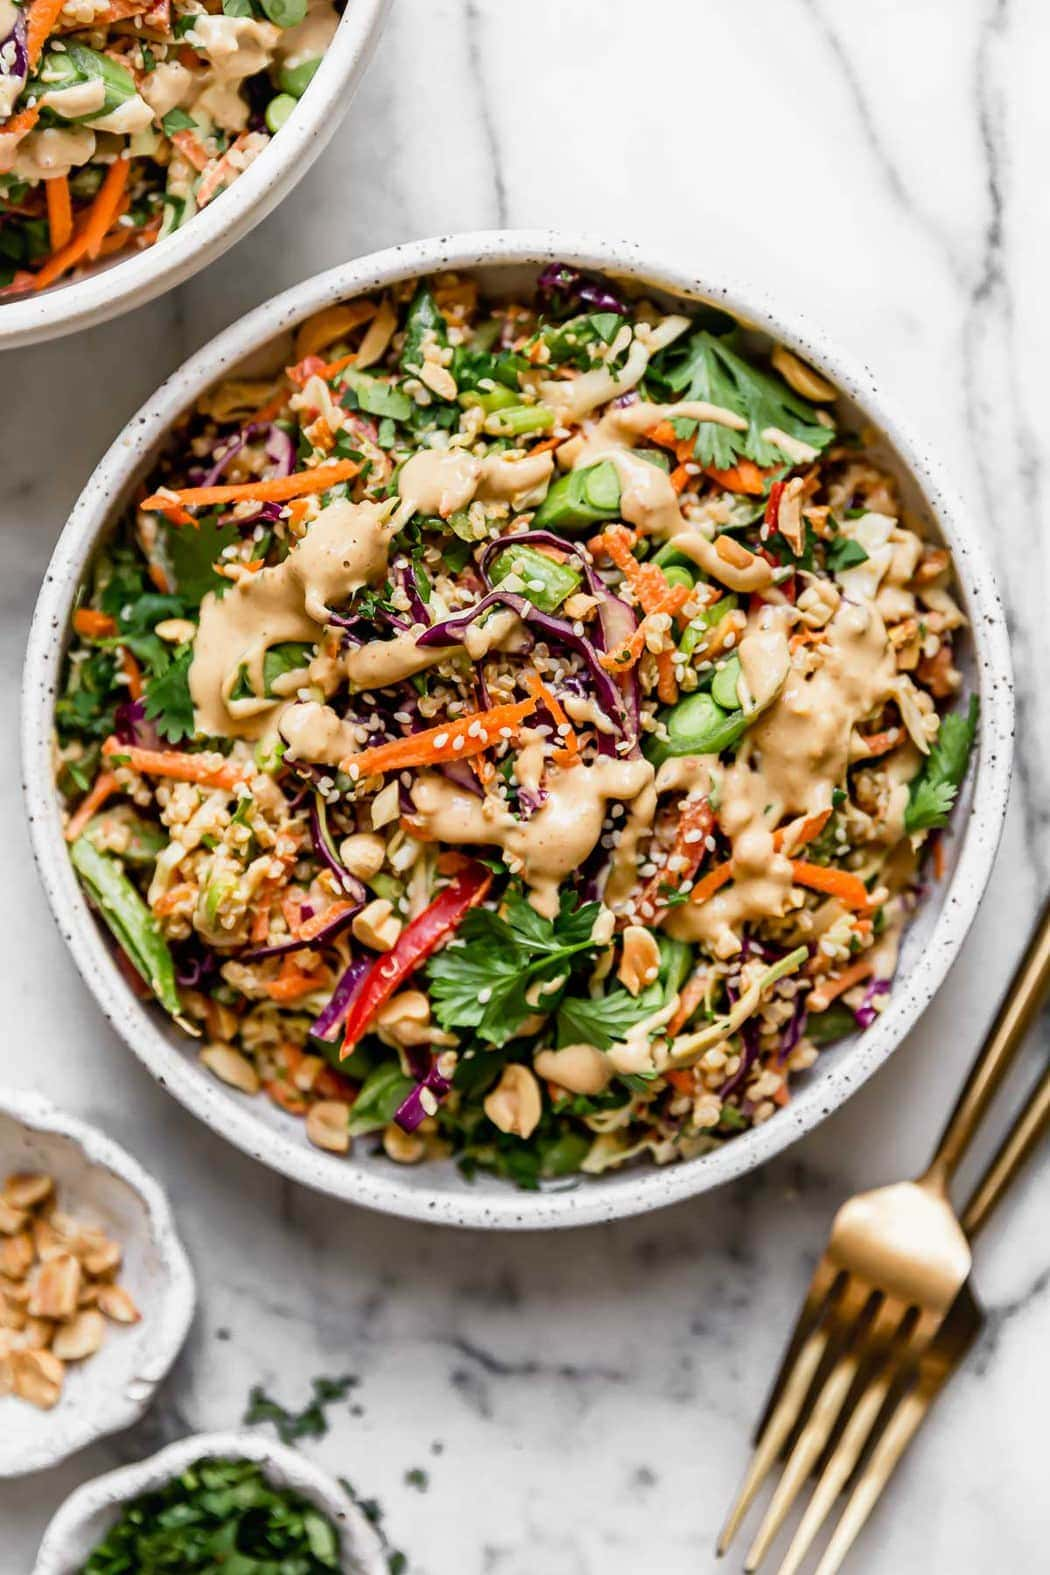 Thai Peanut Quinoa Salad Served in a White Stone Bowl